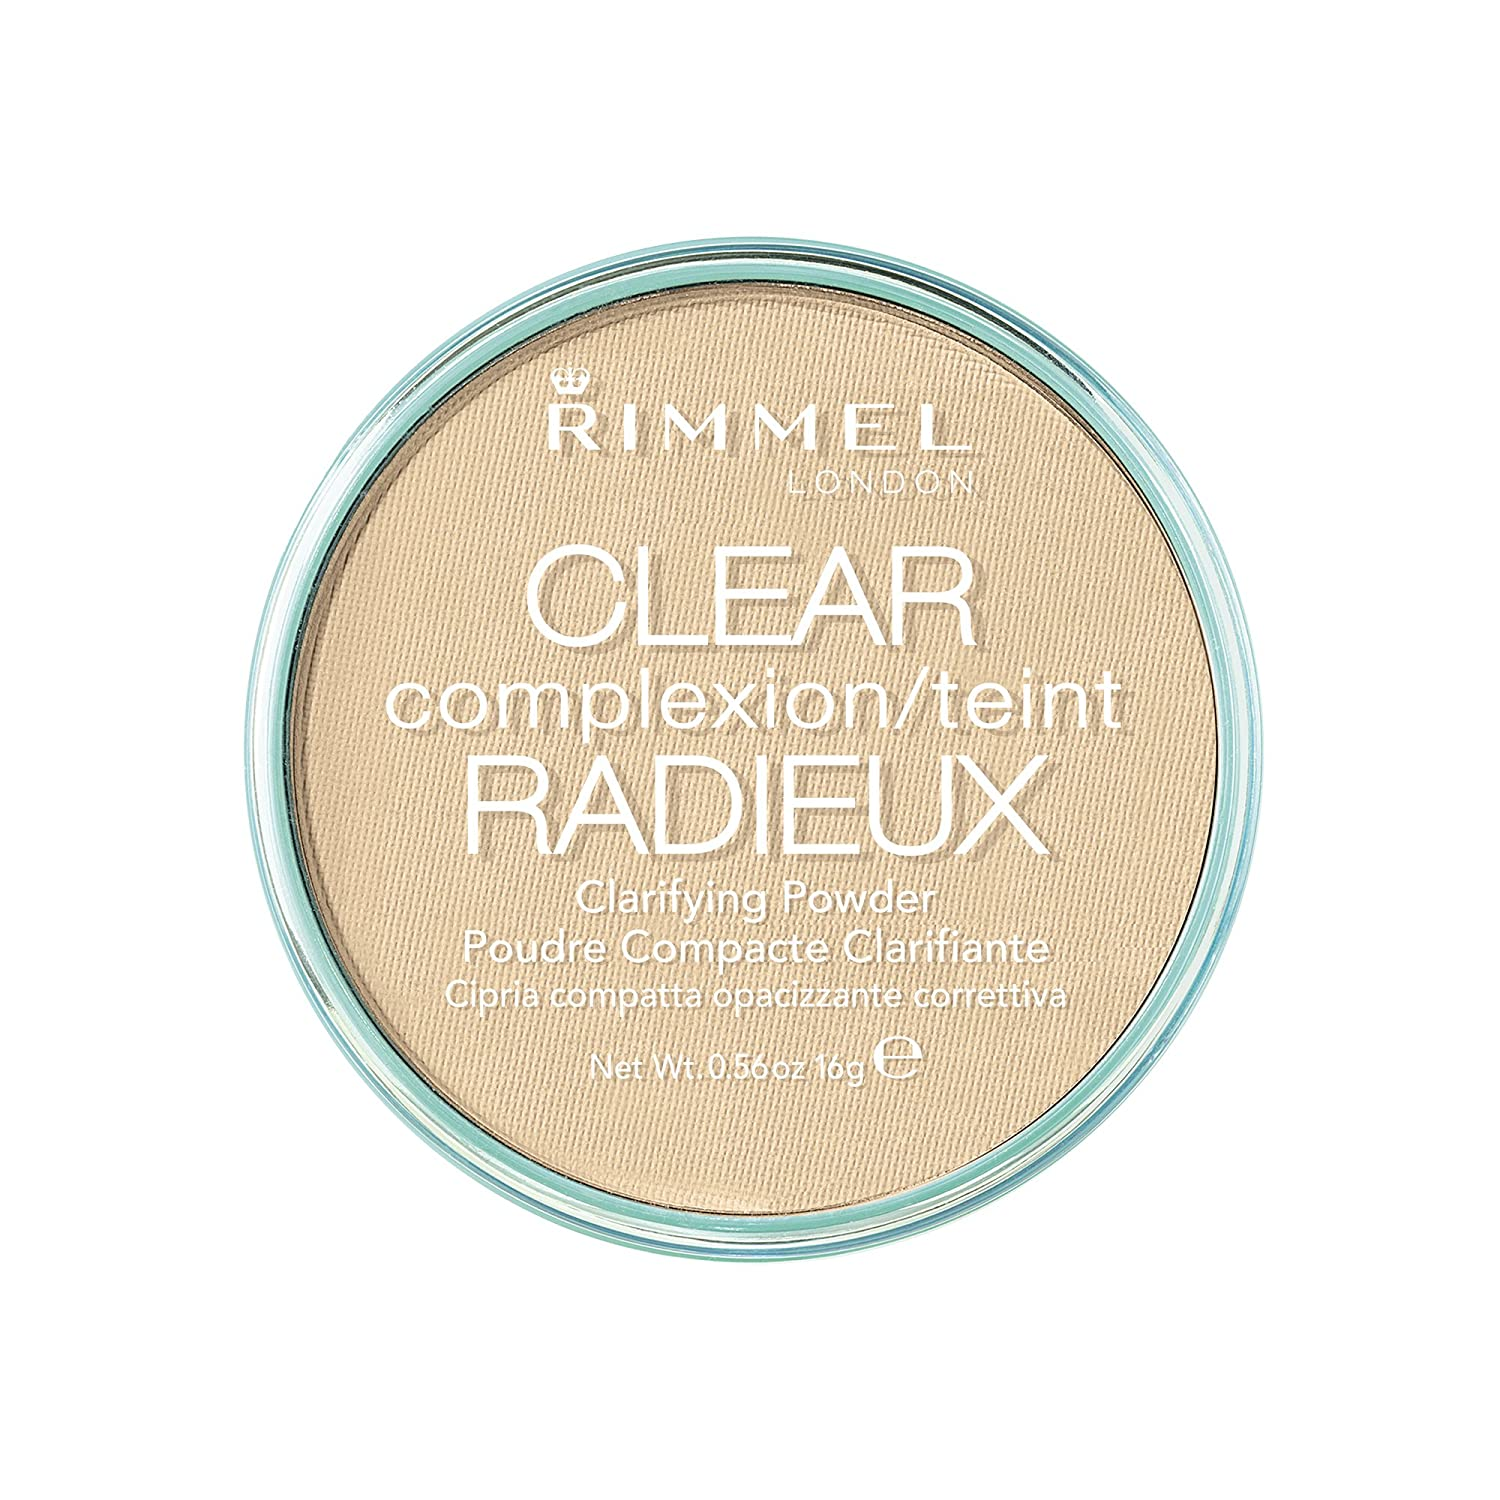 Rimmel London - Clear Complexion Pressed Powder Coty 34003043021